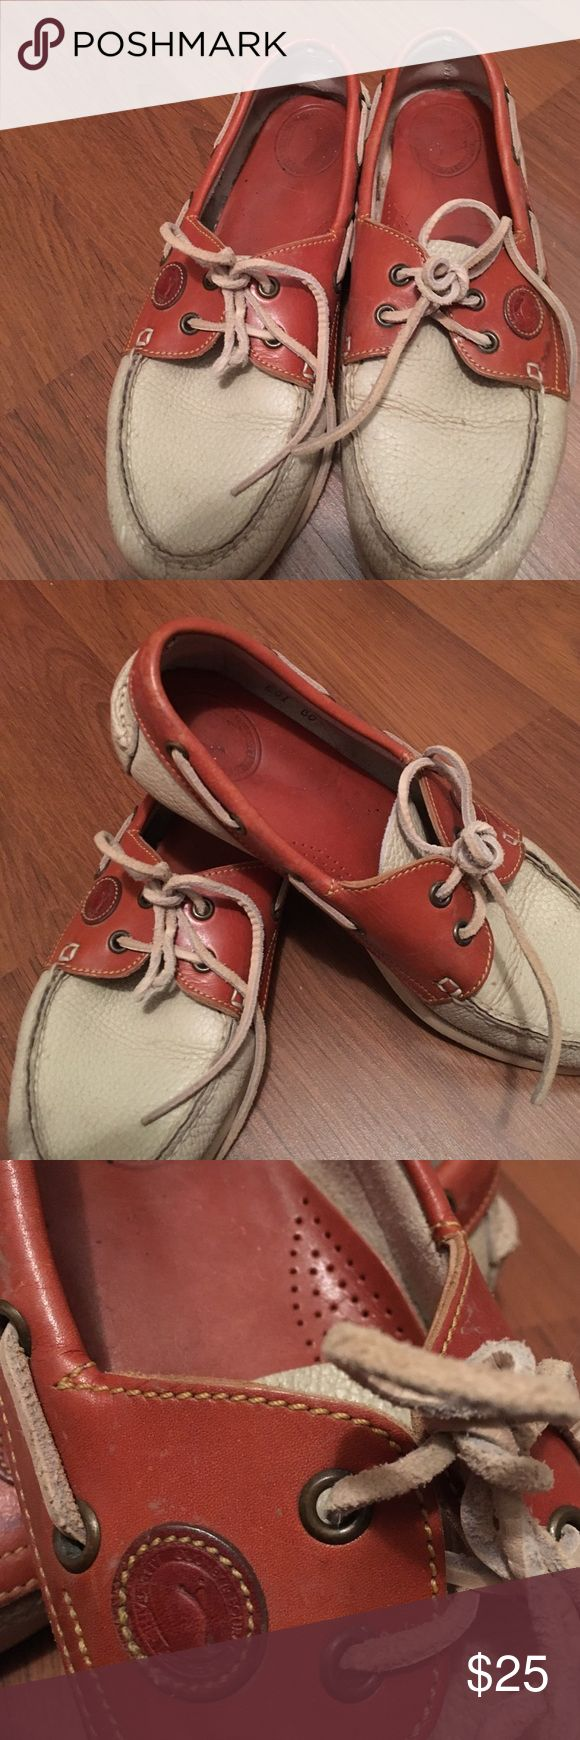 Dooney and Bourke ivory leather boat shoes All weather leather boat shoes by Dooney and Bourke. I just found these in my closet true vintage find. Heavily worn but still good condition considering age. Dooney & Bourke Shoes Flats & Loafers